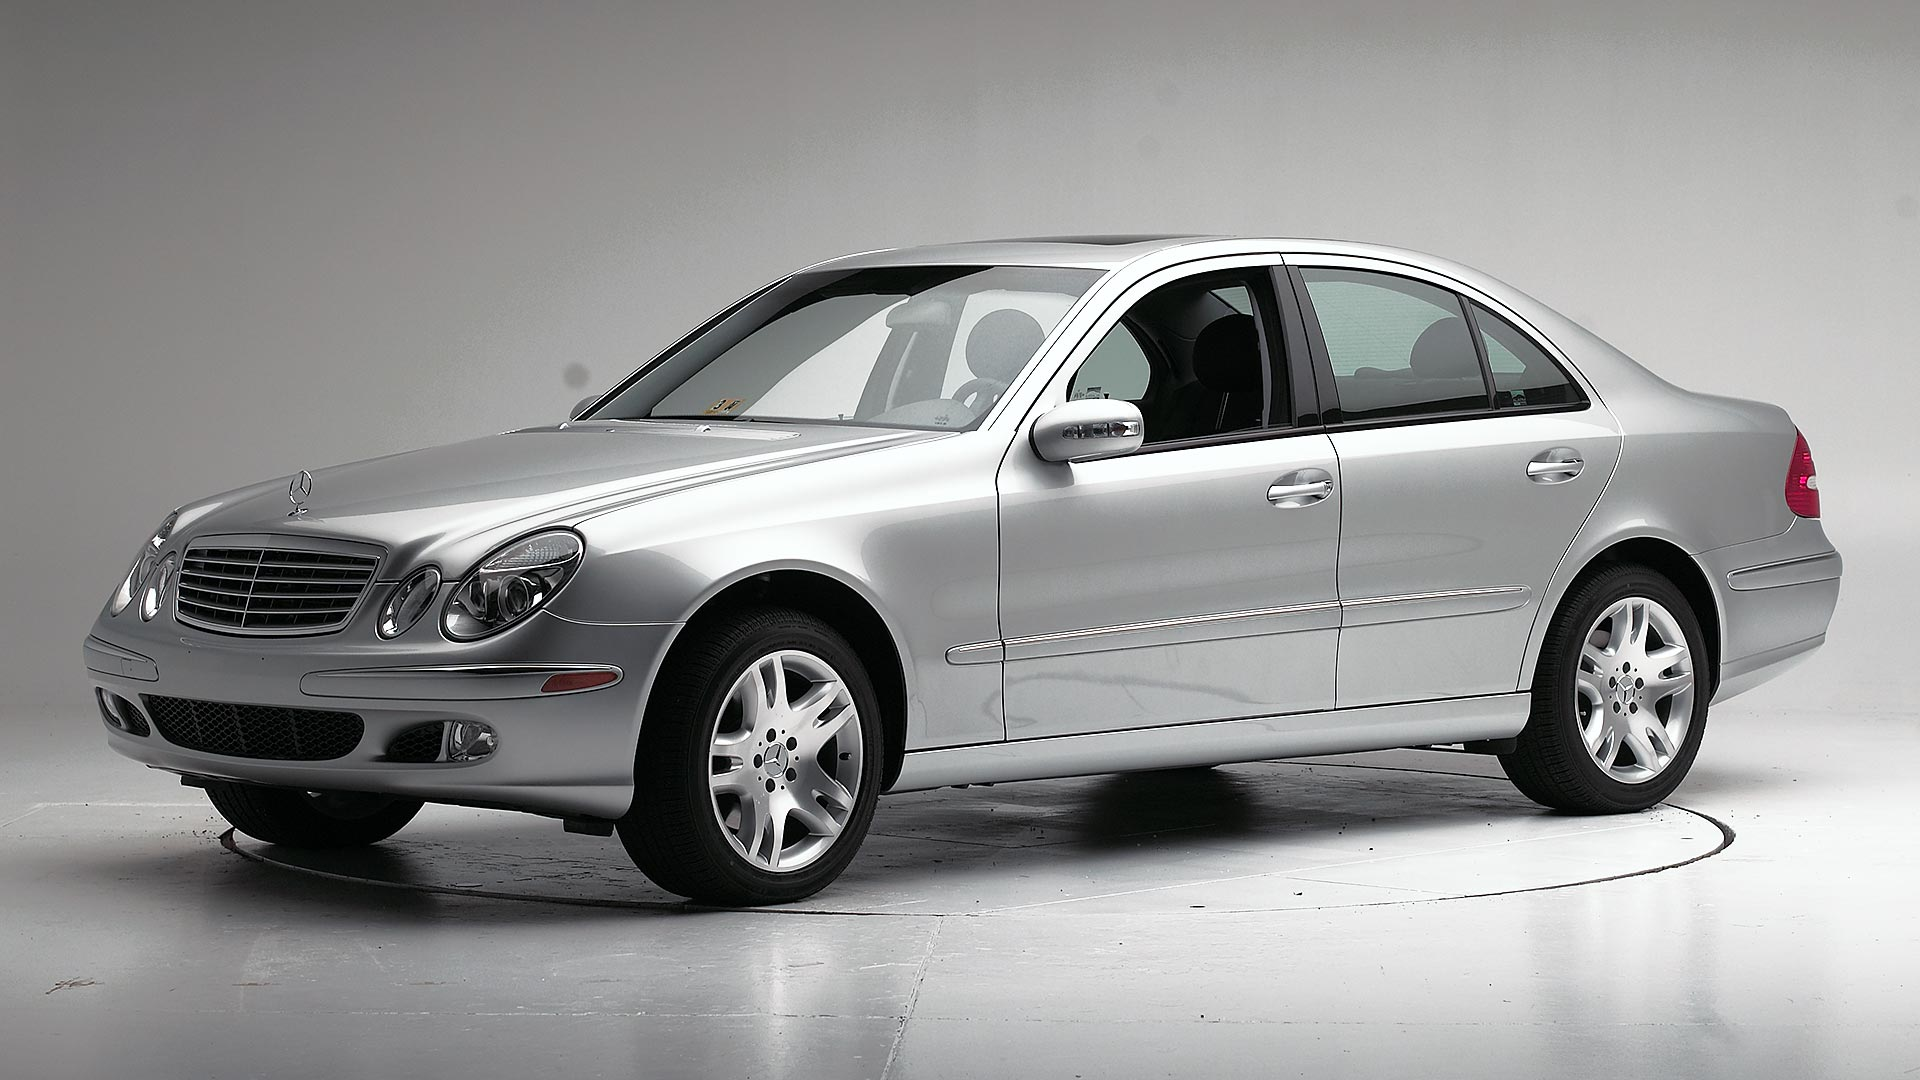 2004 Mercedes-Benz E-Class 4-door sedan